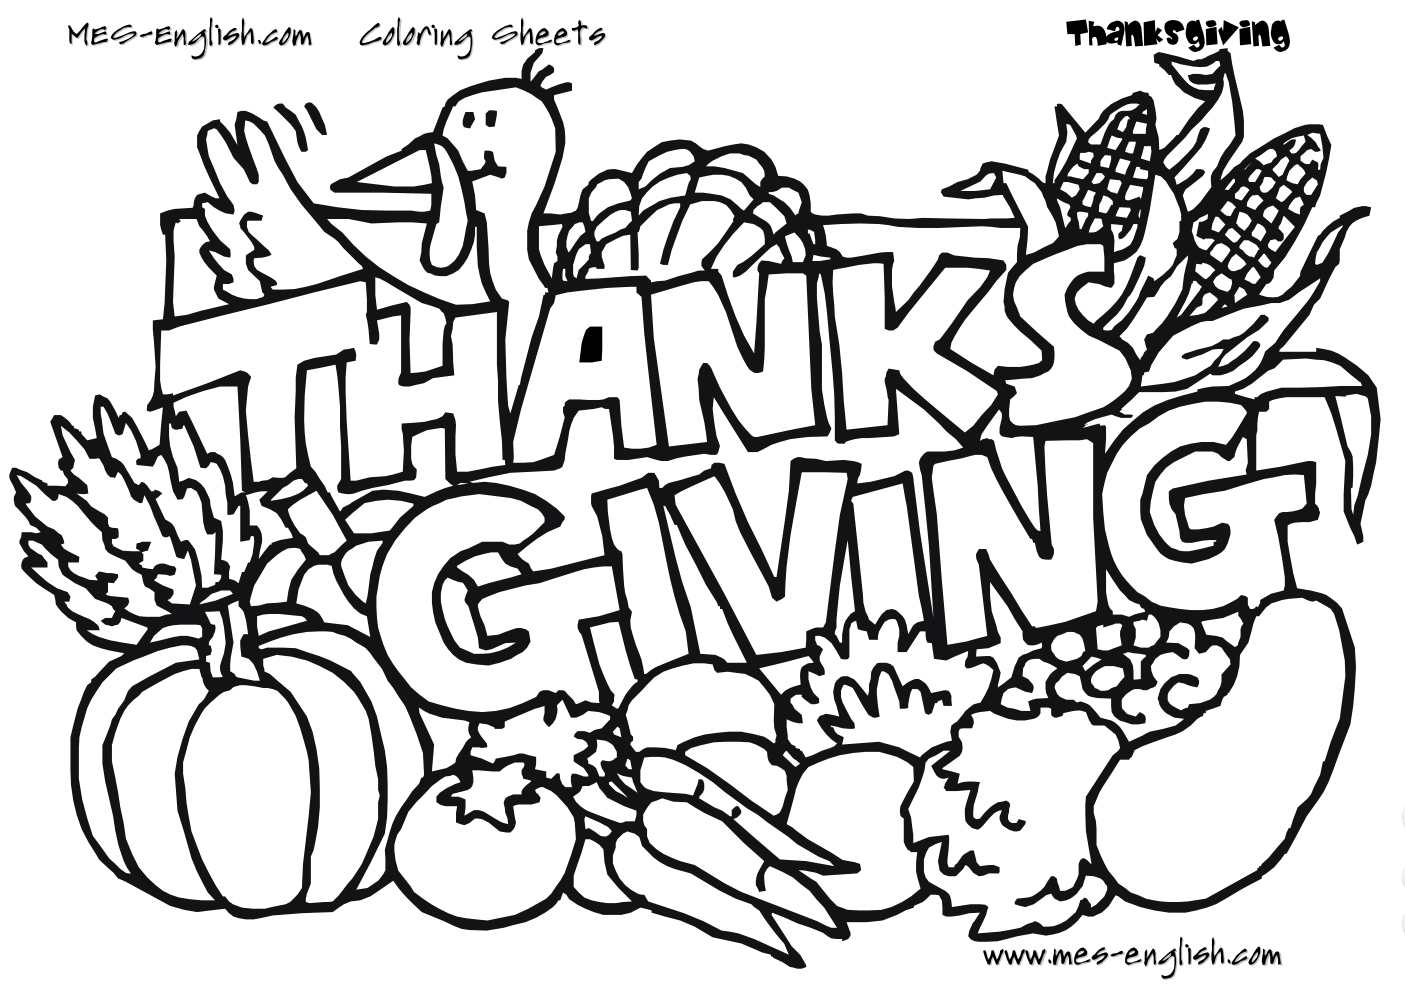 Free Thanksgiving Coloring Pages For Kids - Free Printable Thanksgiving Coloring Pages